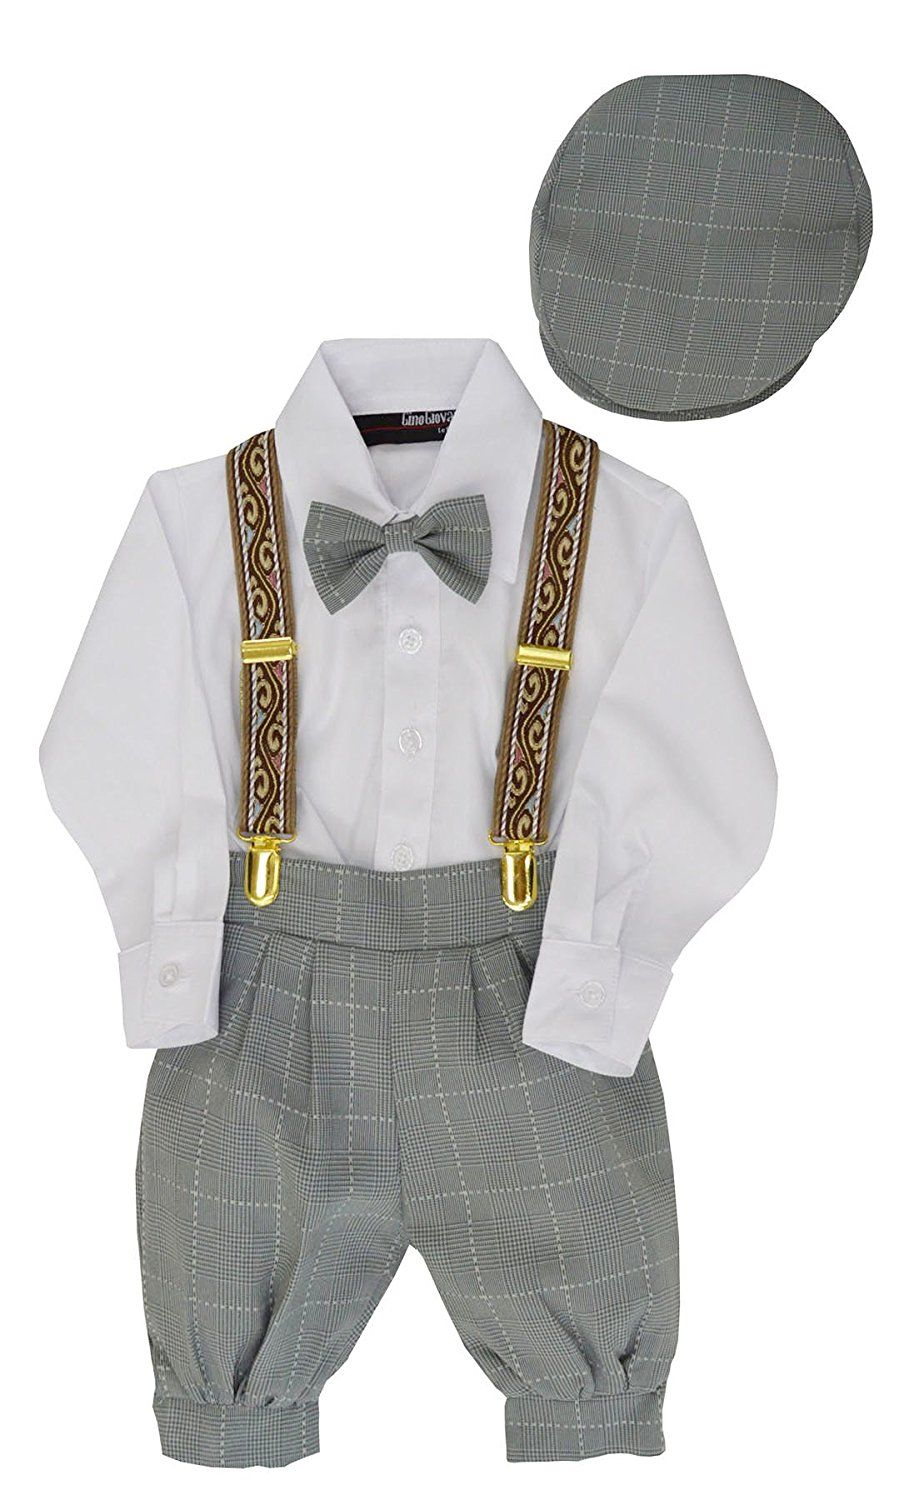 8dd4de5aa 1920s Children Fashions: Girls, Boys, Baby Costumes Gino Giovanni Boys  Vintage Style Knickers Outfit Suspenders Set $29.99 AT vintagedancer.com